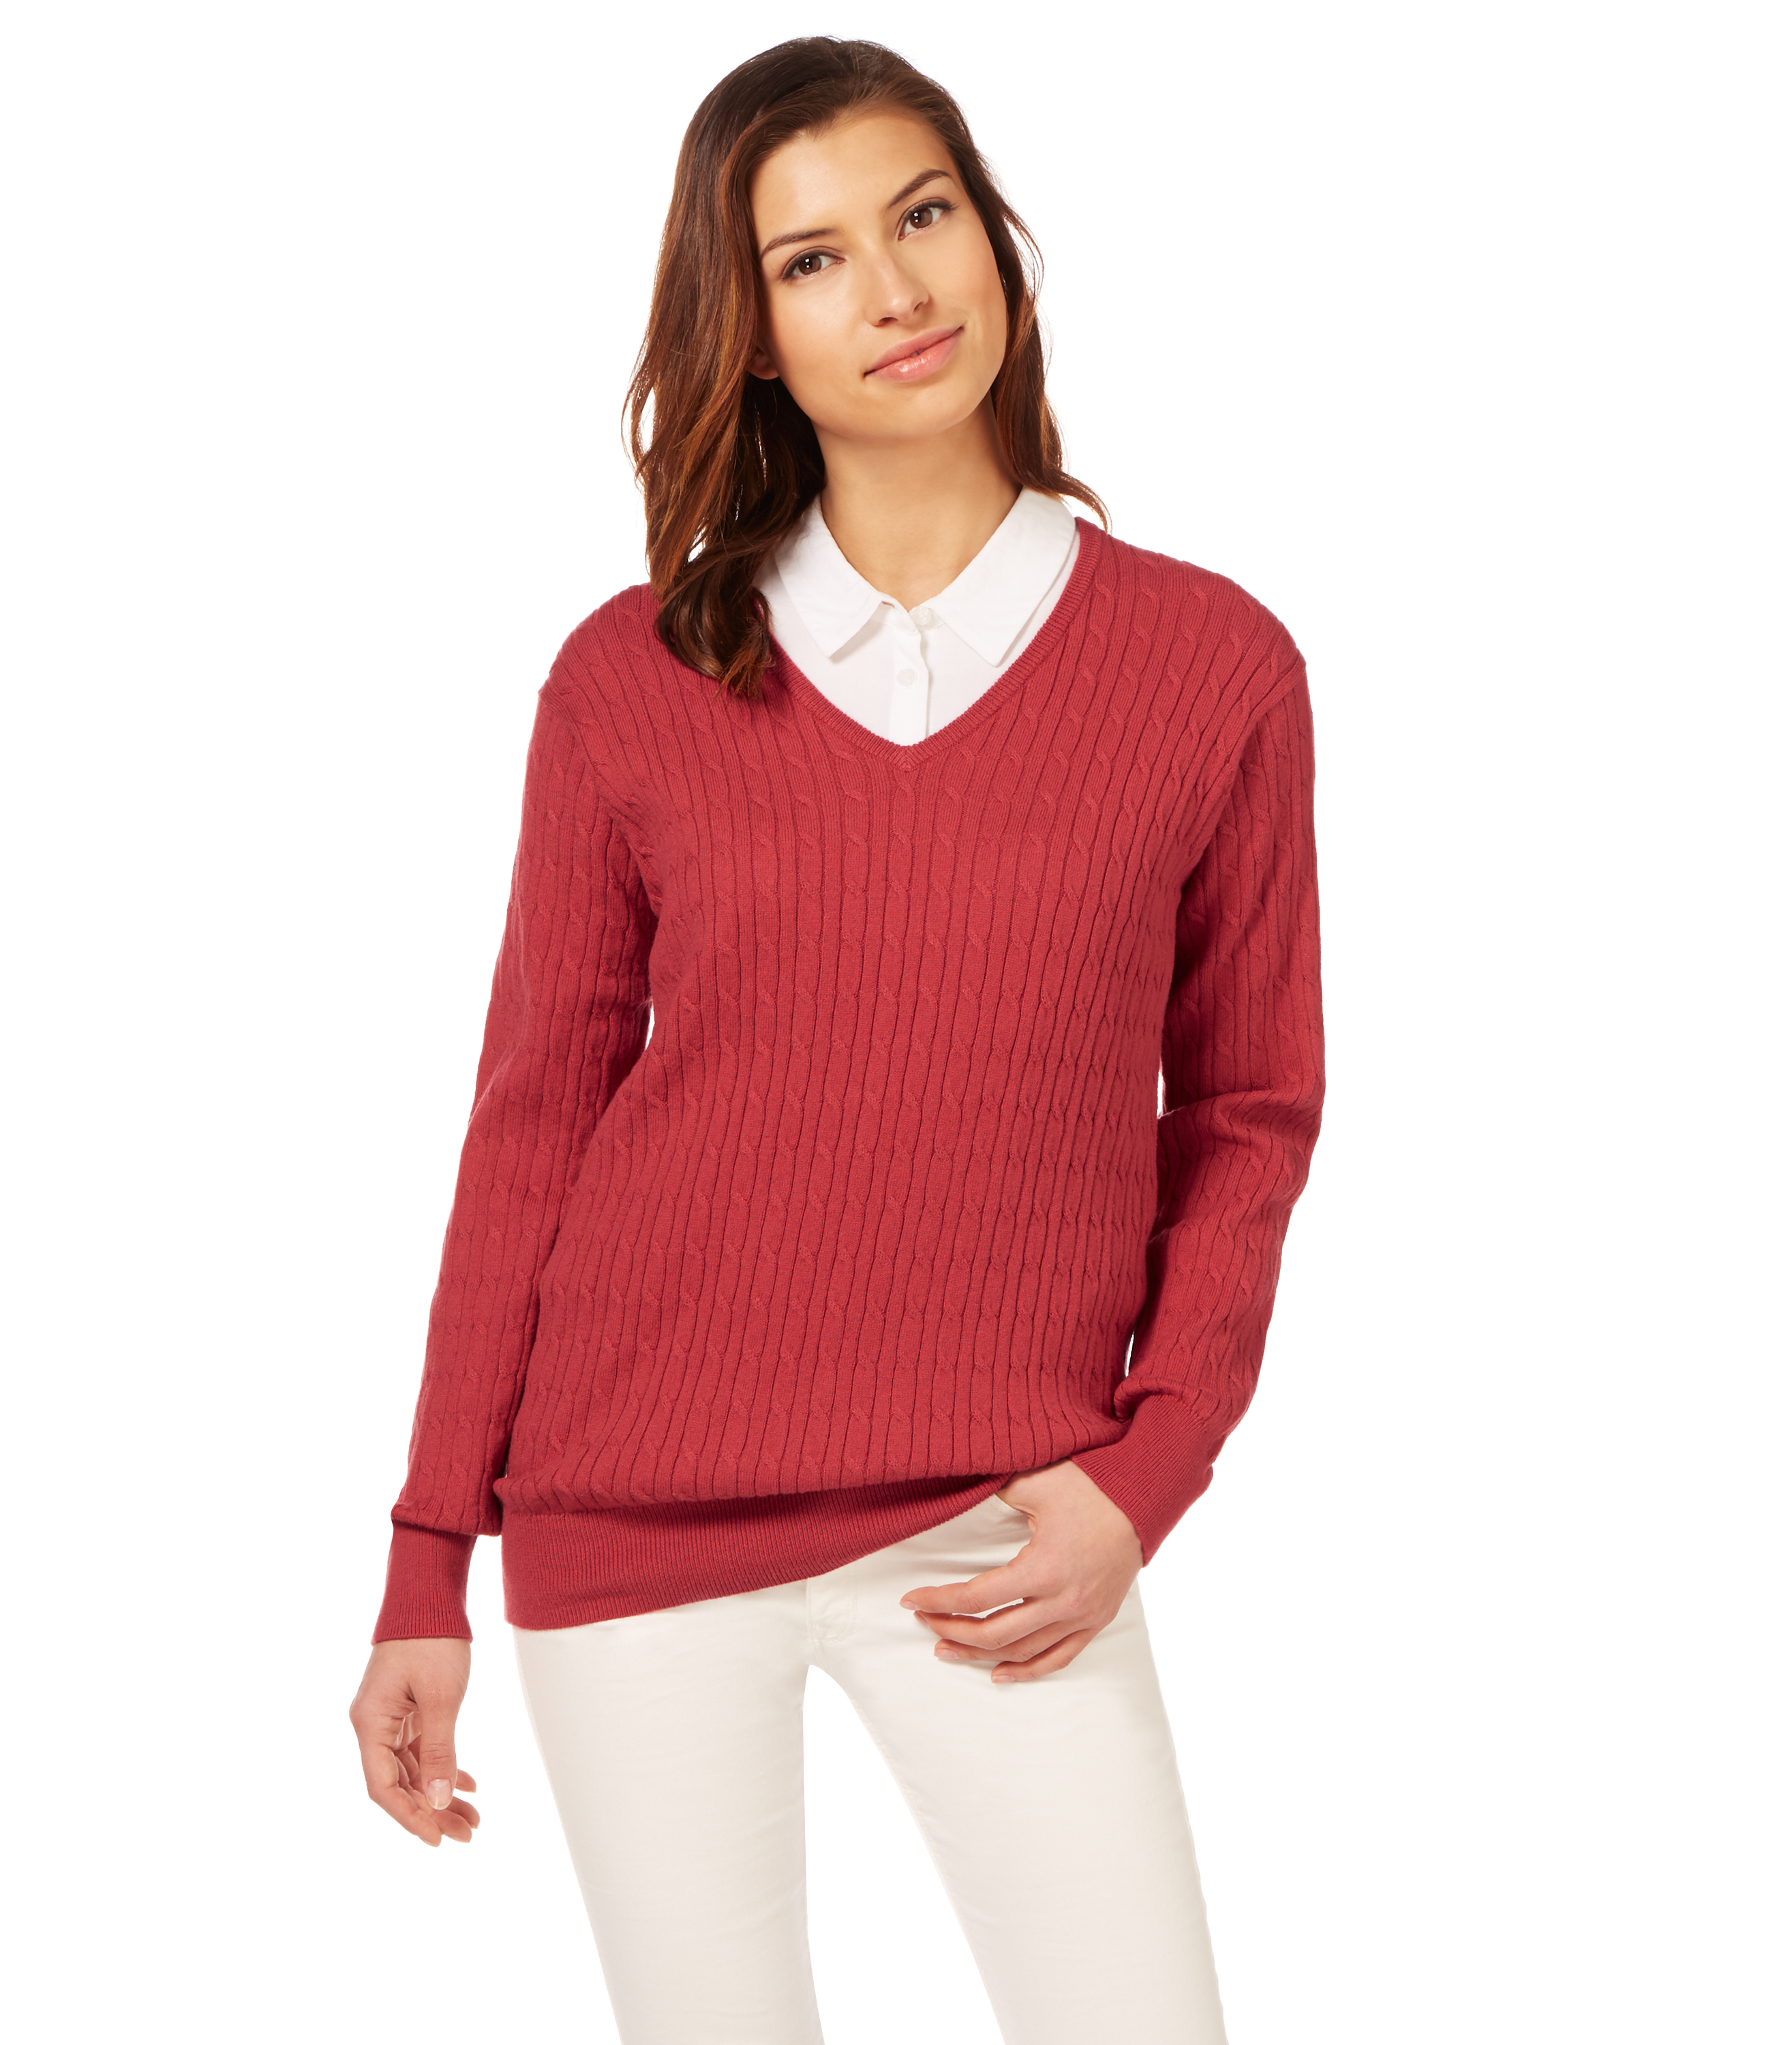 Amazon Essentials Women's V-Neck Stripe Sweater Shop Best Sellers· Deals of the Day· Fast Shipping· Read Ratings & Reviews.